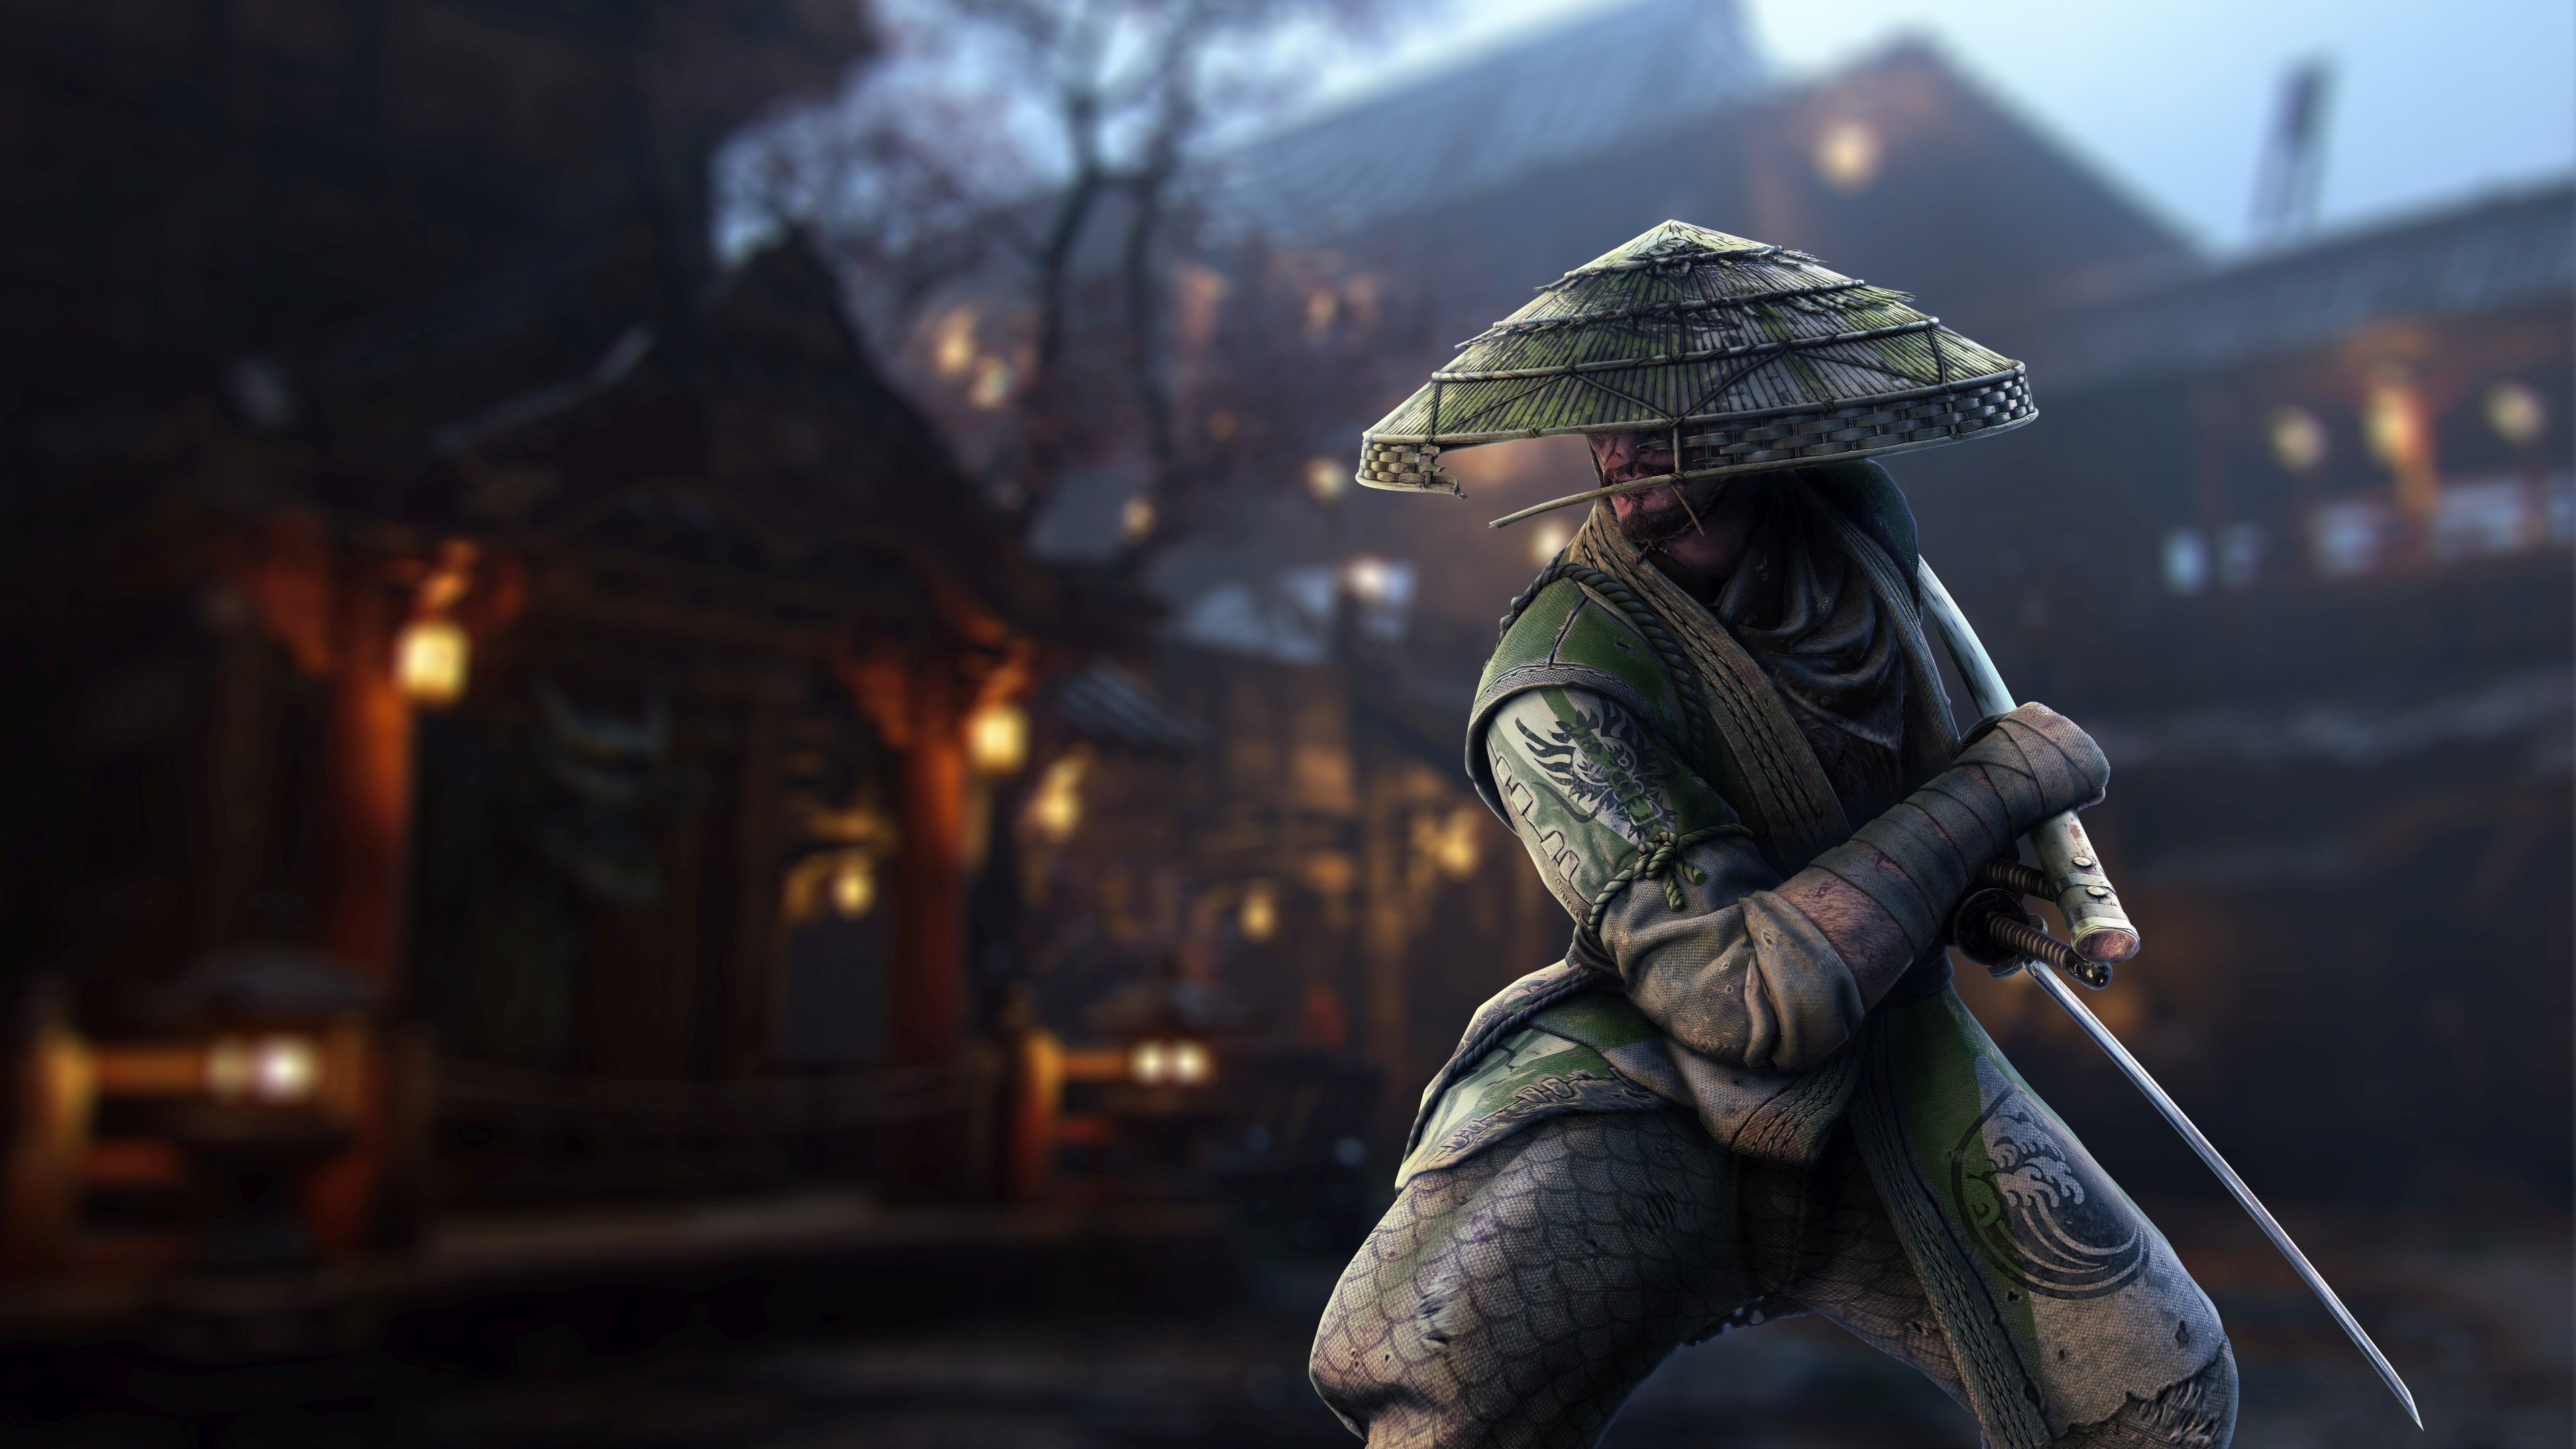 For Honor 4k Ultra Hd Wallpaper Background Image 3840x2160 Id 884138 Wallpaper Abyss